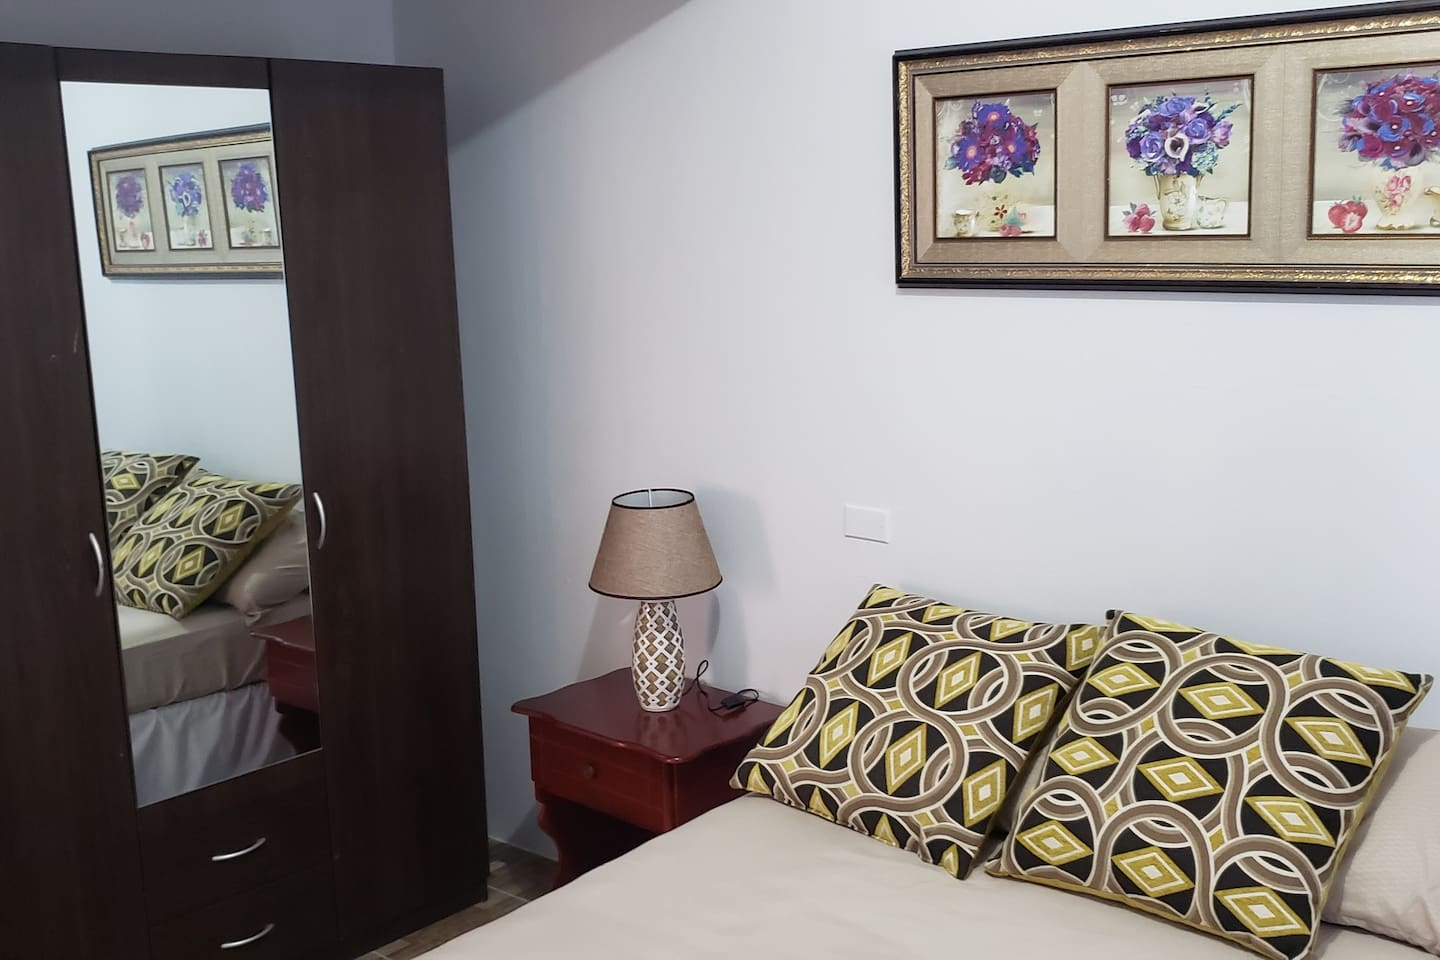 Sleep should be relaxing! A comfortable space to ensure you have a restful night.